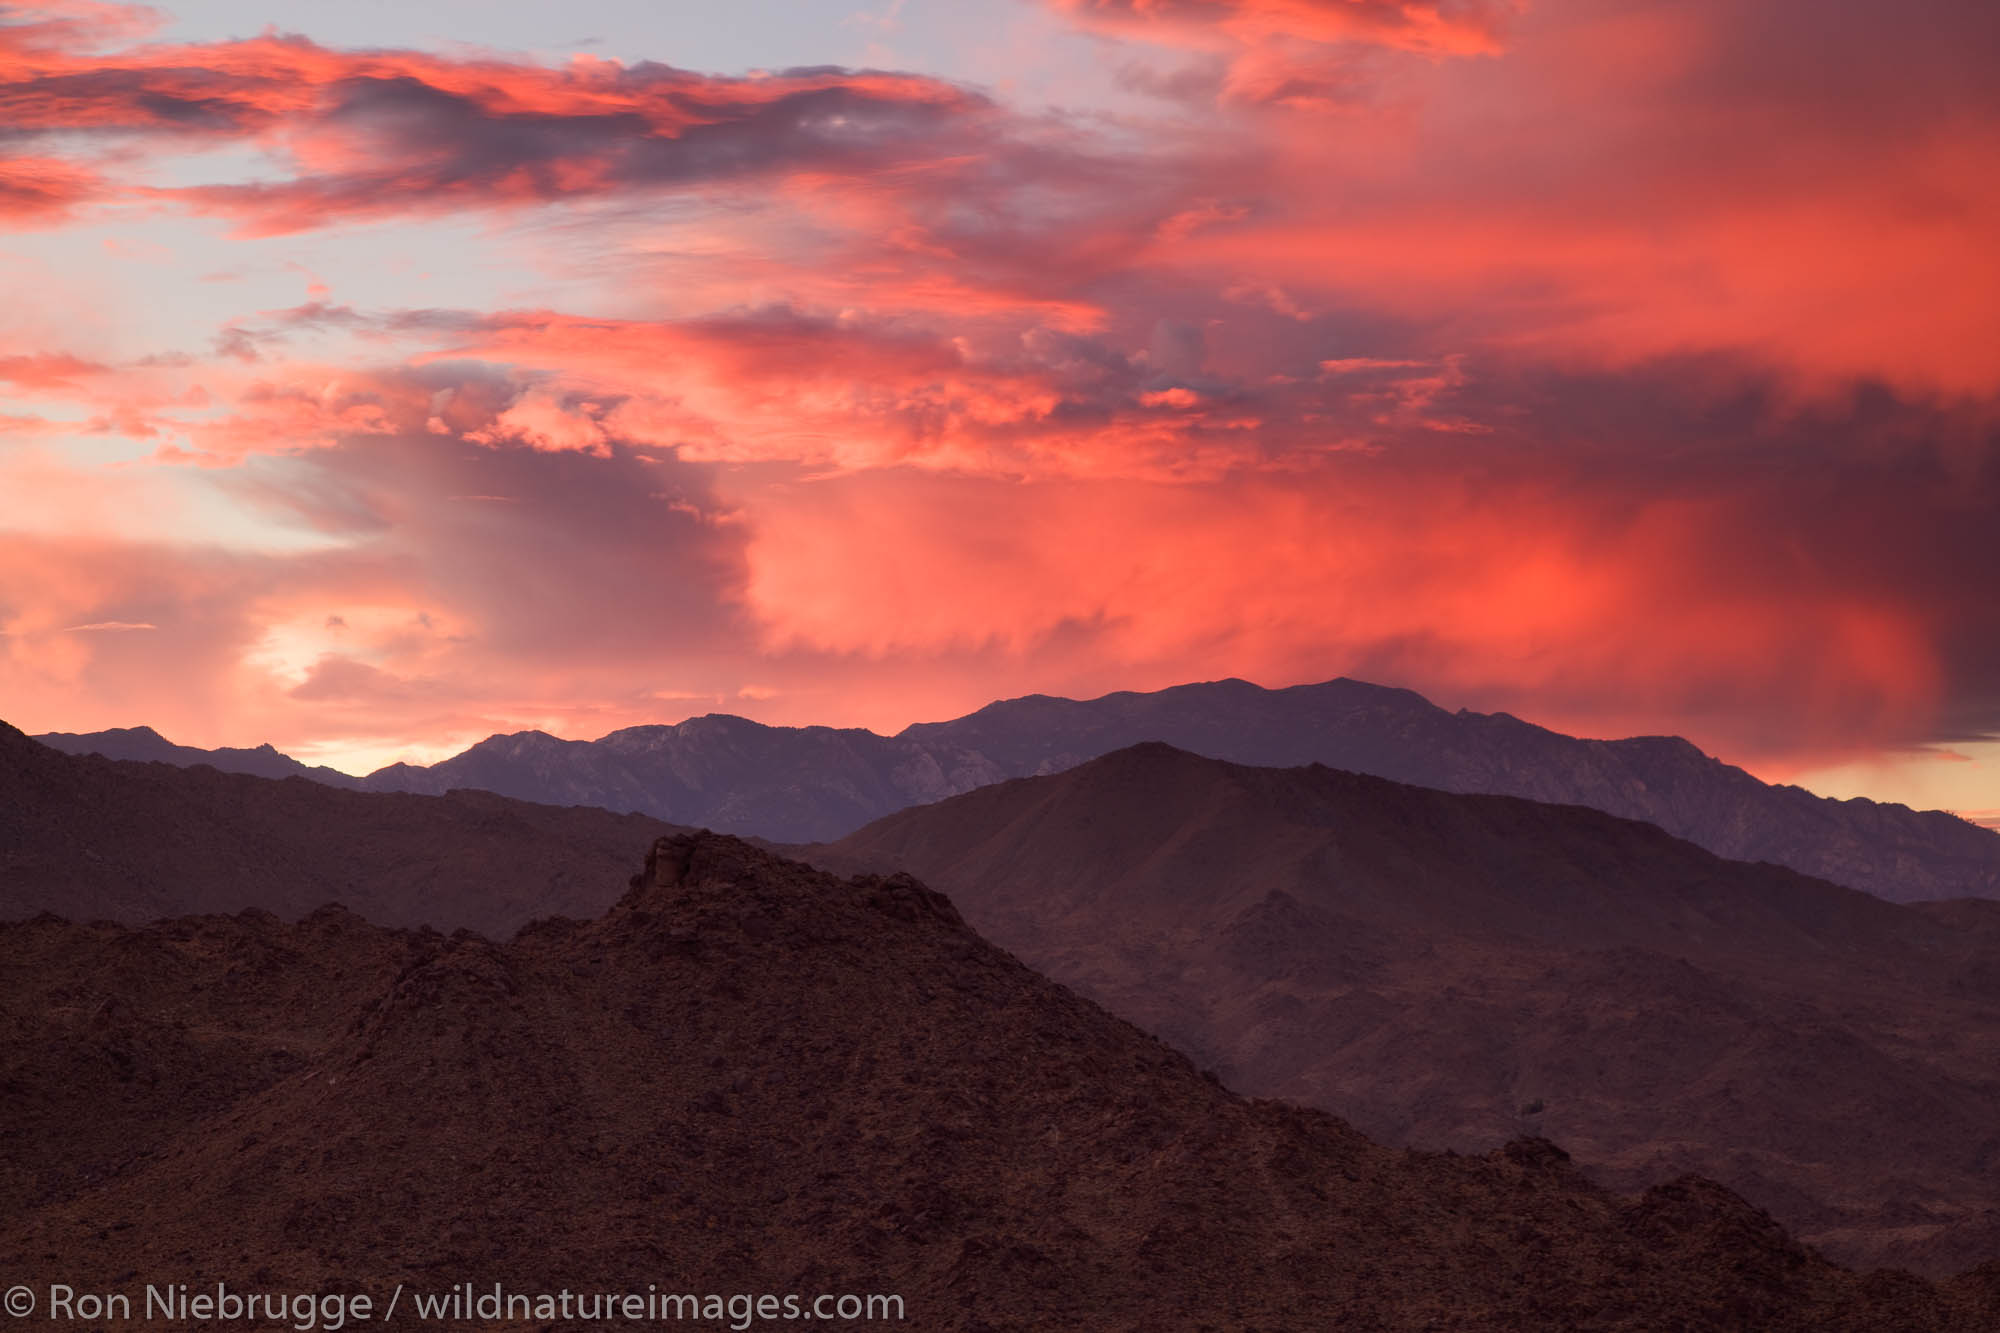 Sunset over the San Jacinto Mountains from Palm Desert and the Coachella Valley, California.